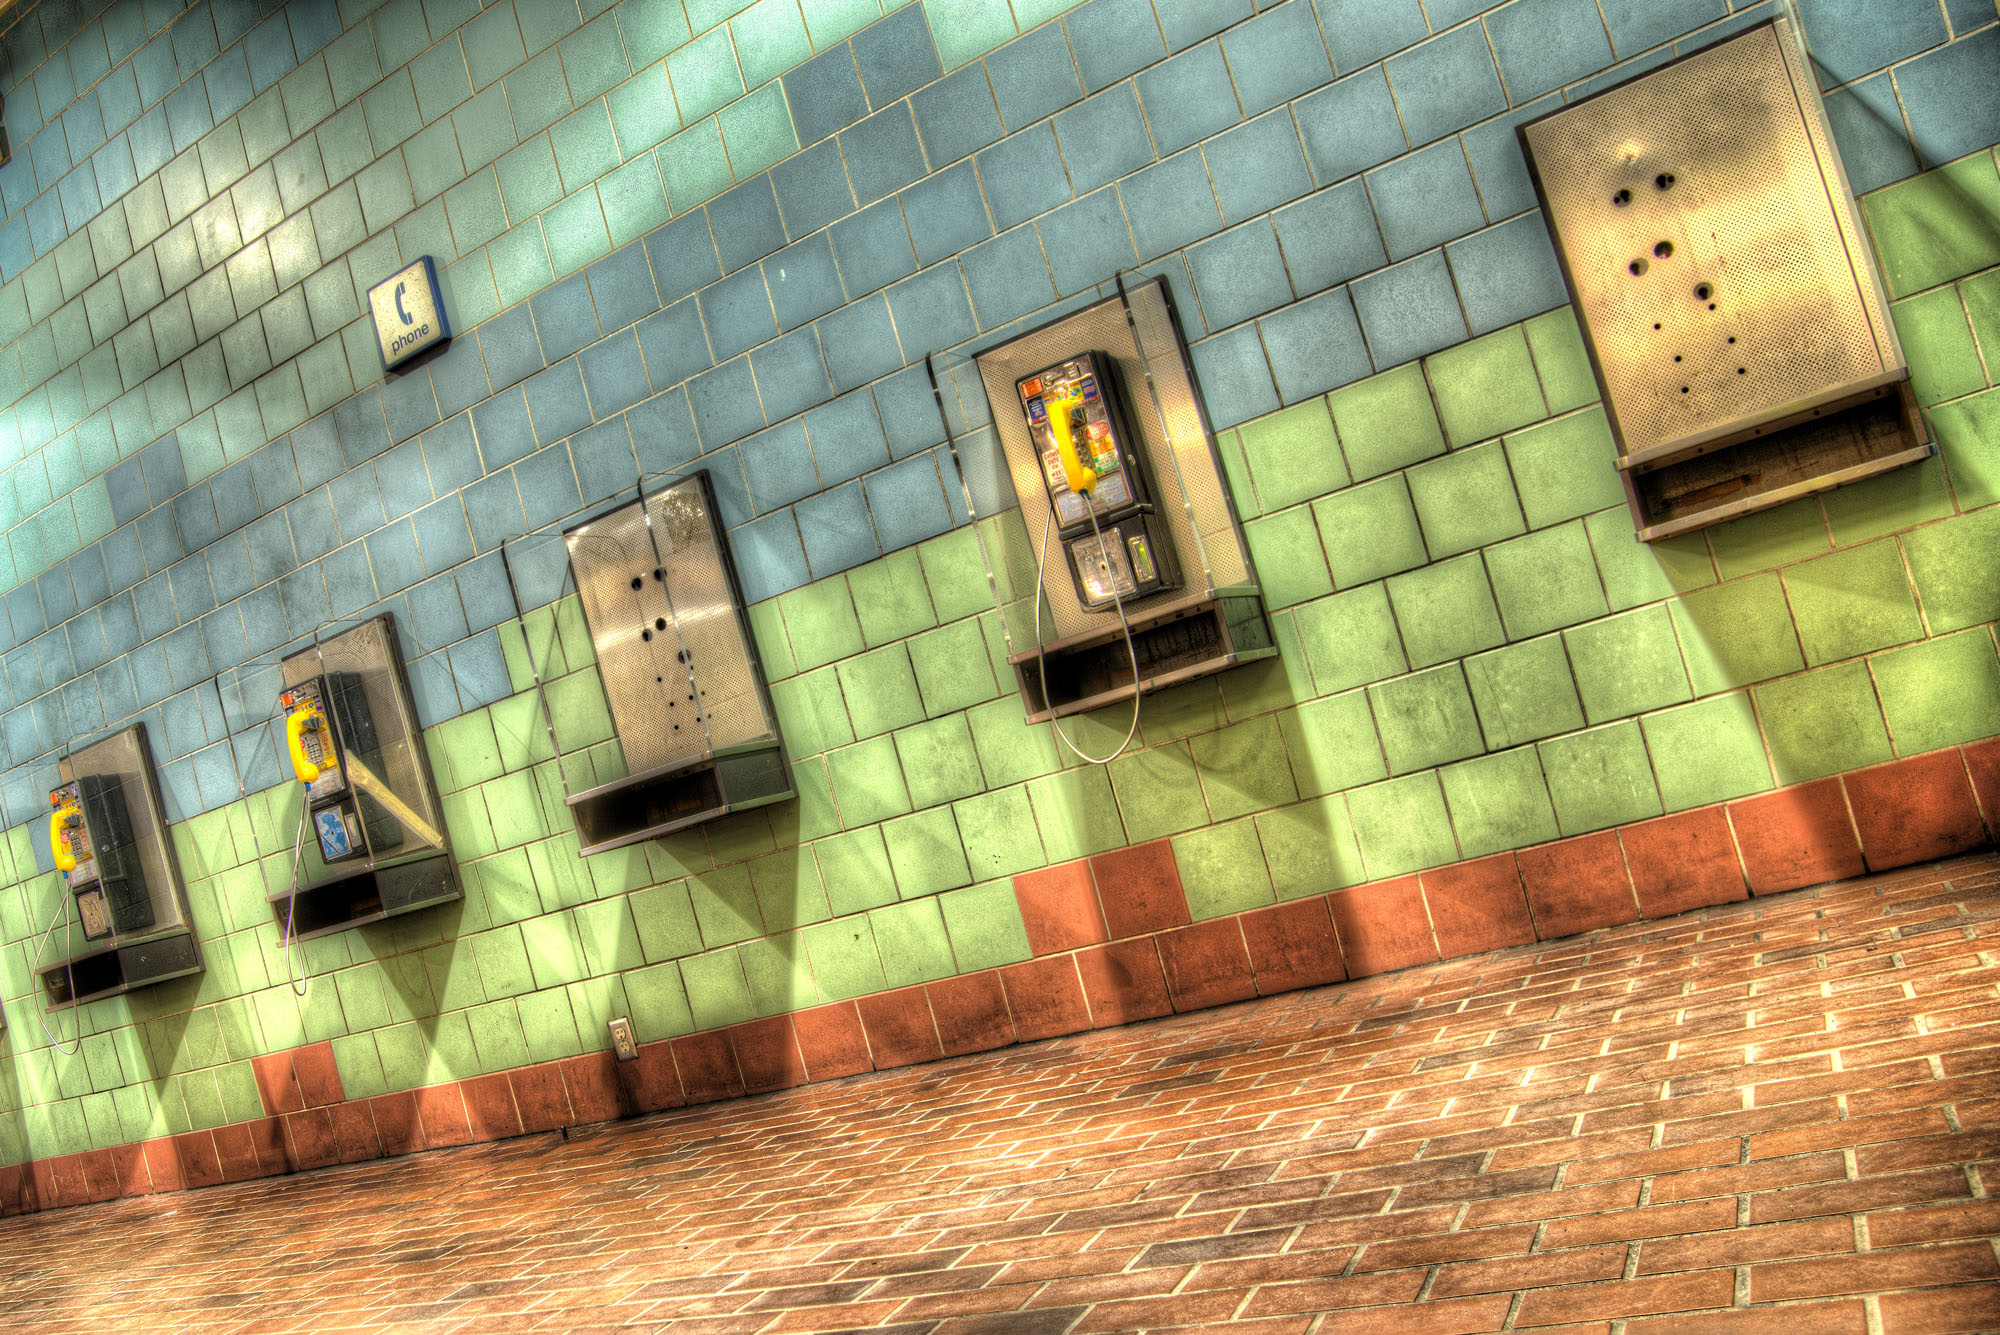 phones_1_2_3_color